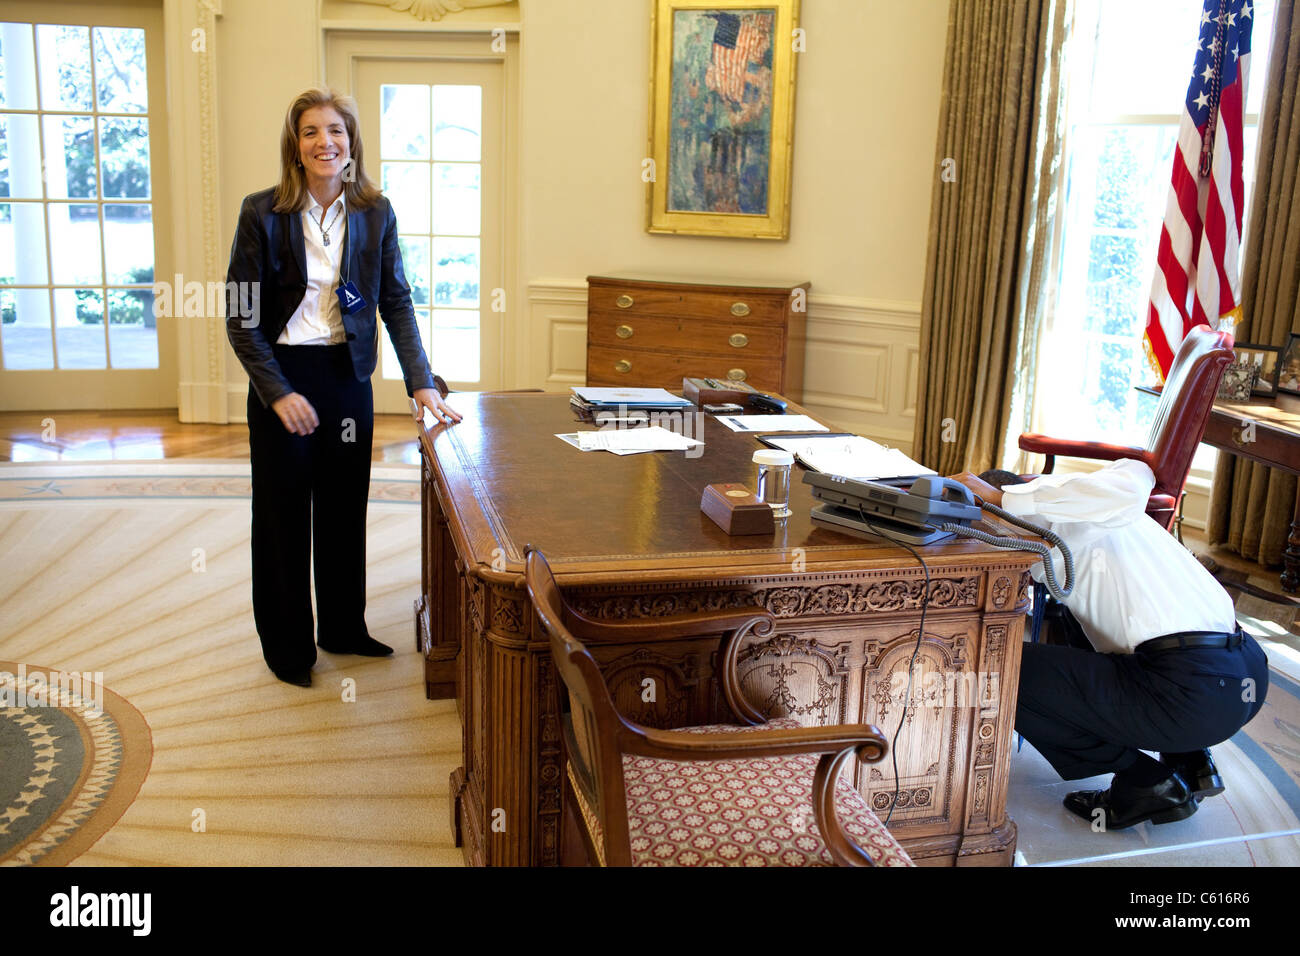 kennedy oval office. Caroline Kennedy Schlossberg Visits President Obama In The Oval Office On March 3 2009 Prompting His Examination Of Resolute Desk For Panel Through I